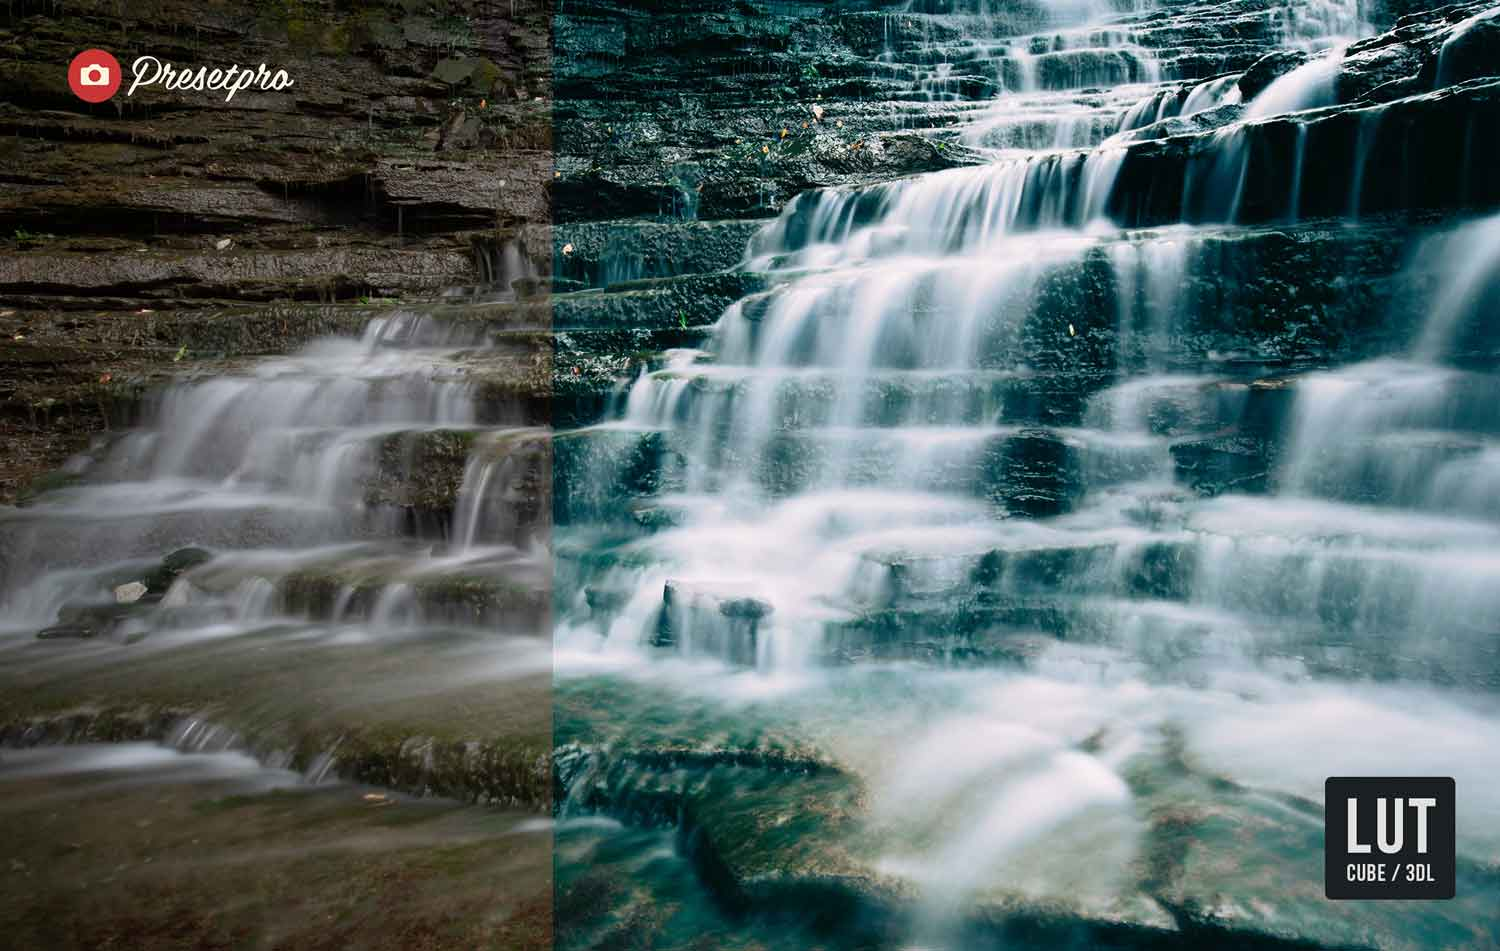 Free-Color-Lookup-Table-LUTs-Watefall-CUBE-3DL-Before-After-Presetpro.com